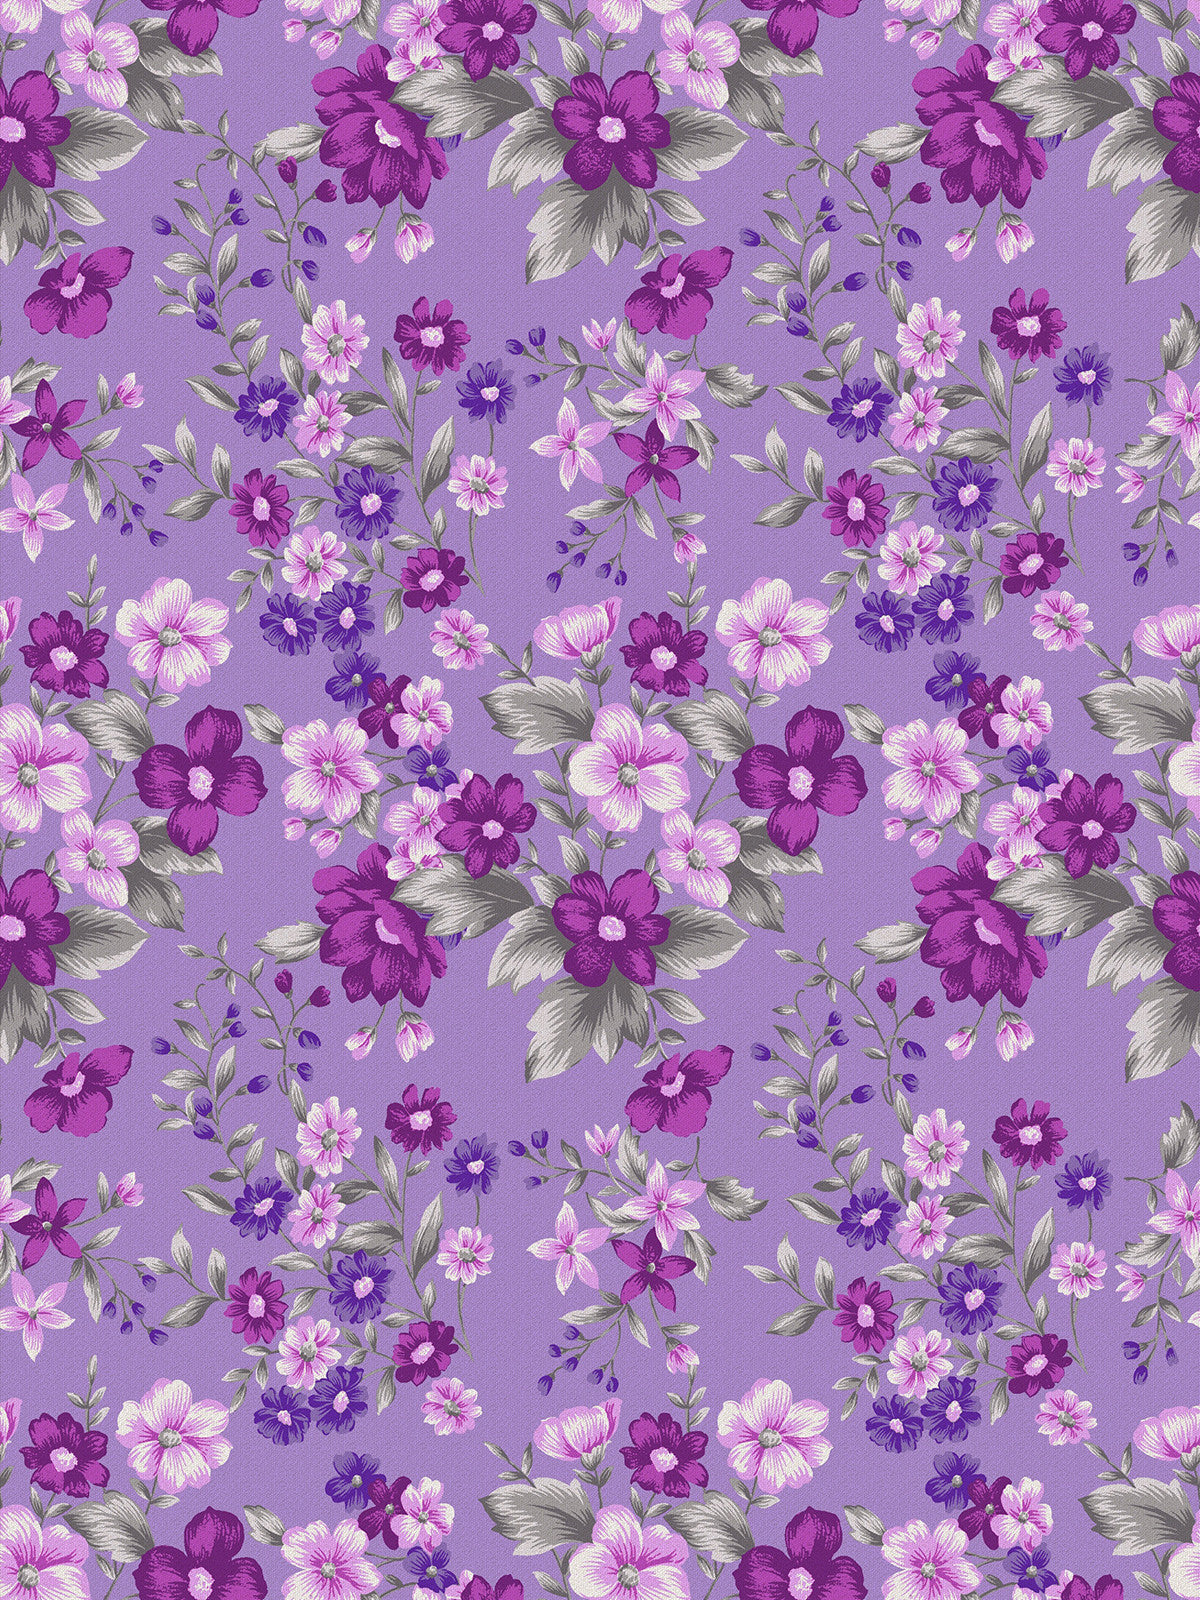 Violet Floral Printed Photo Background / 946 - DropPlace